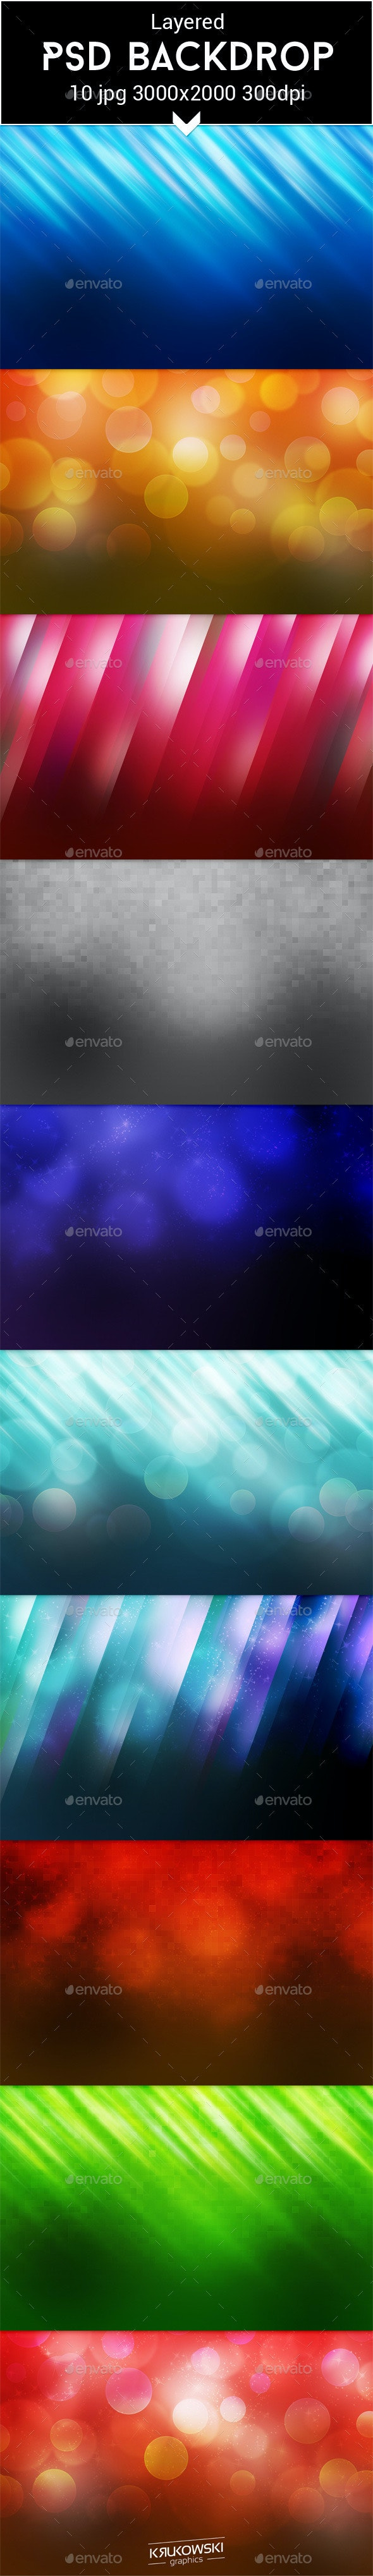 Web PSD Backdrop - Abstract Backgrounds